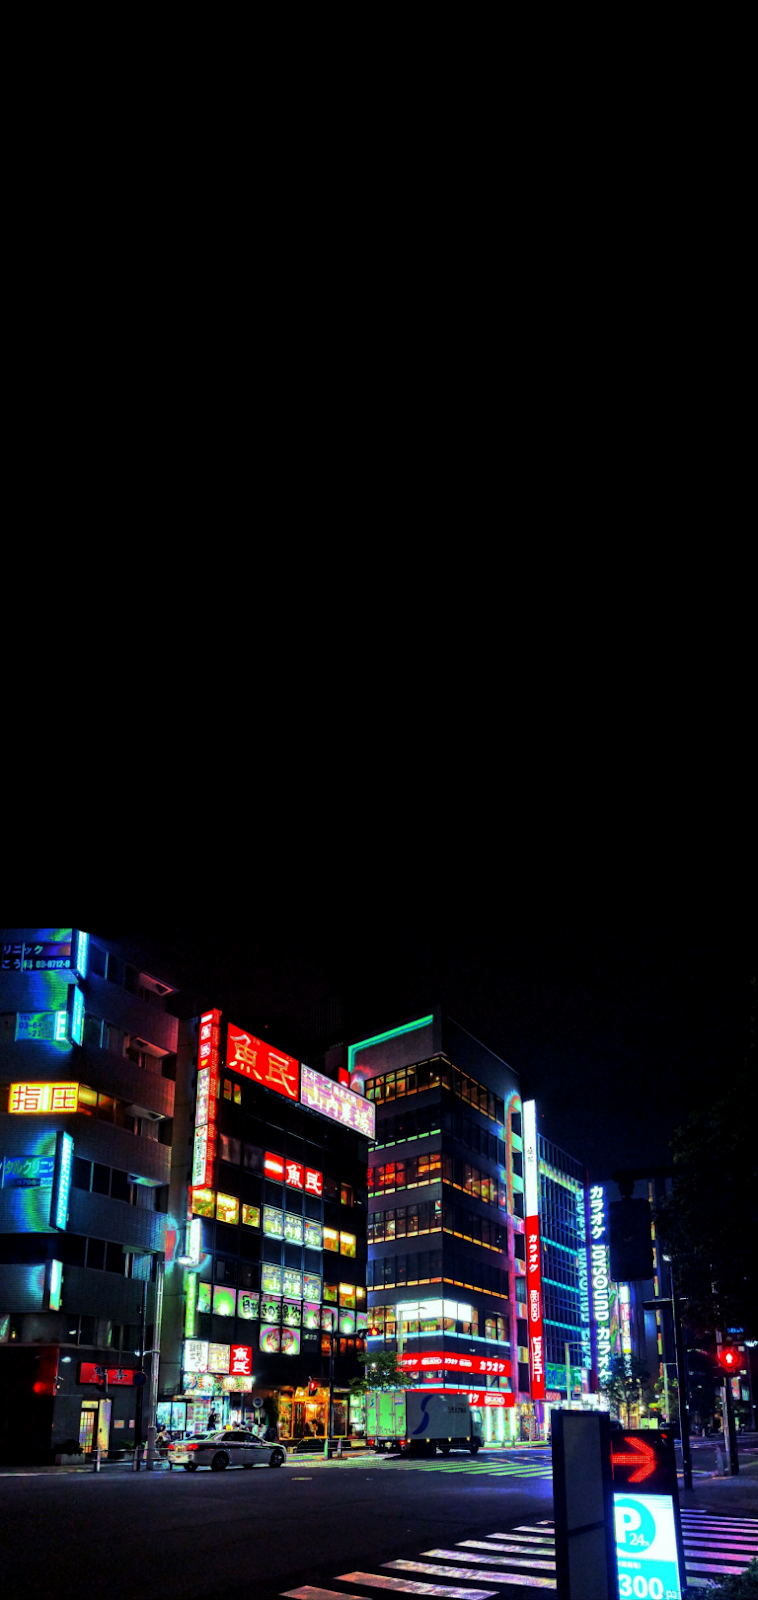 Oled Iphone 11 Pro Optimized Wallpaper Tokyo 768x1621 Iphone